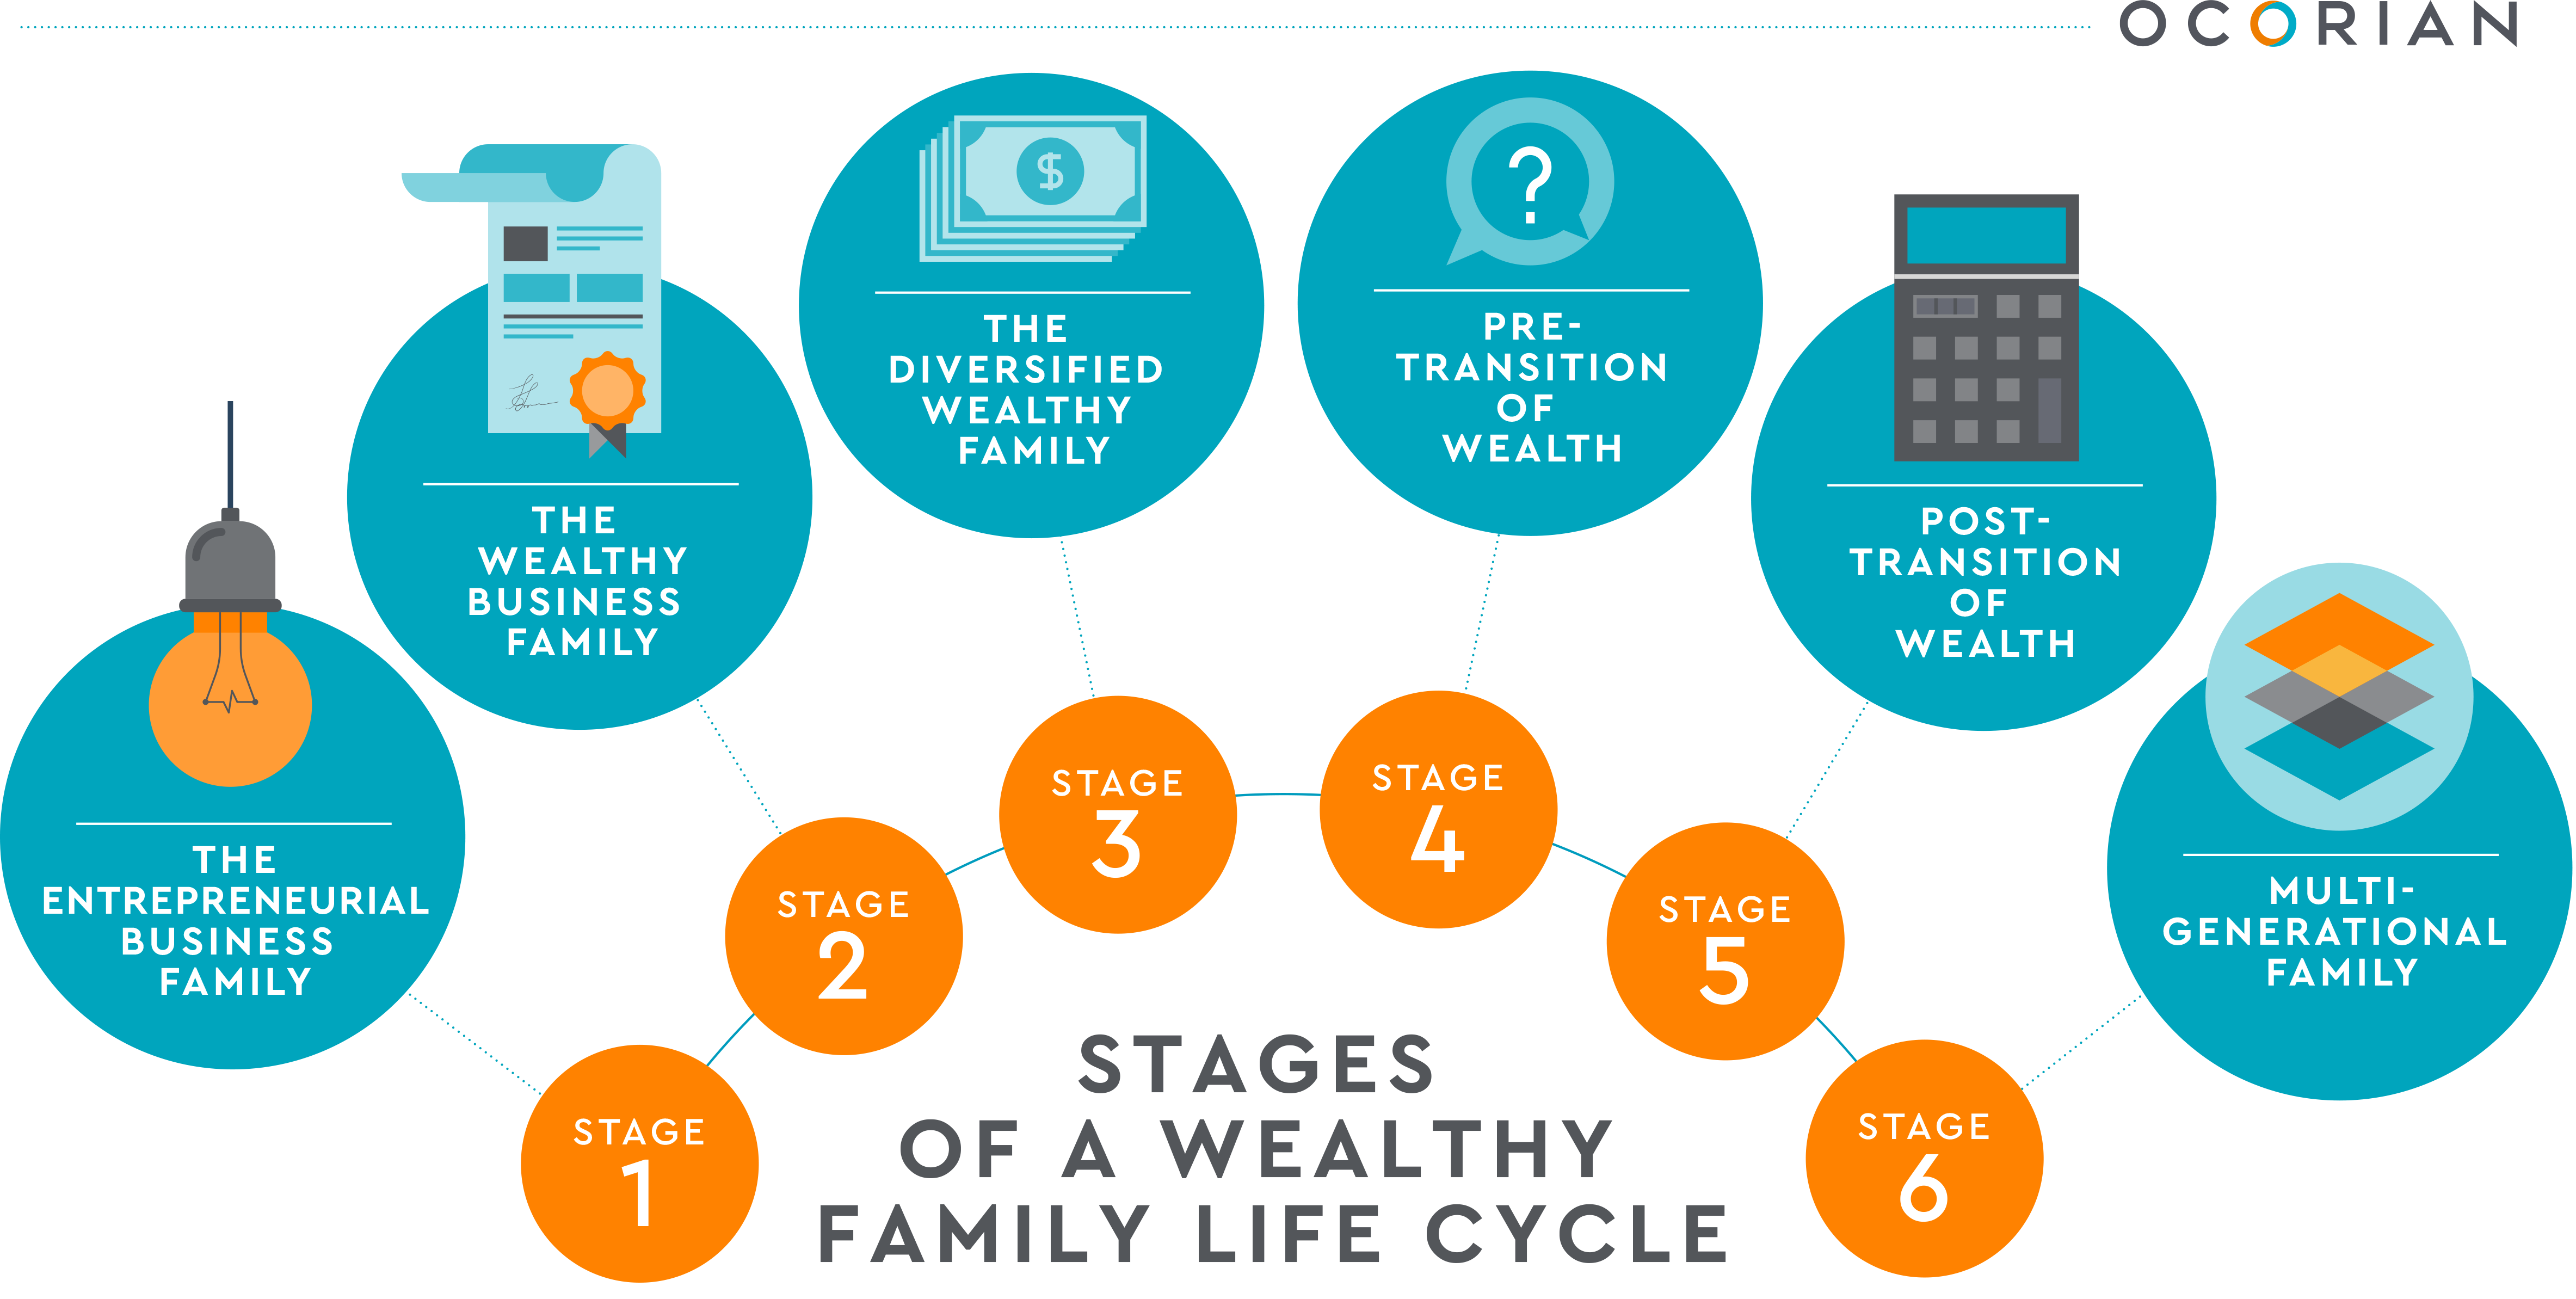 Stages of a wealthy family life cycle